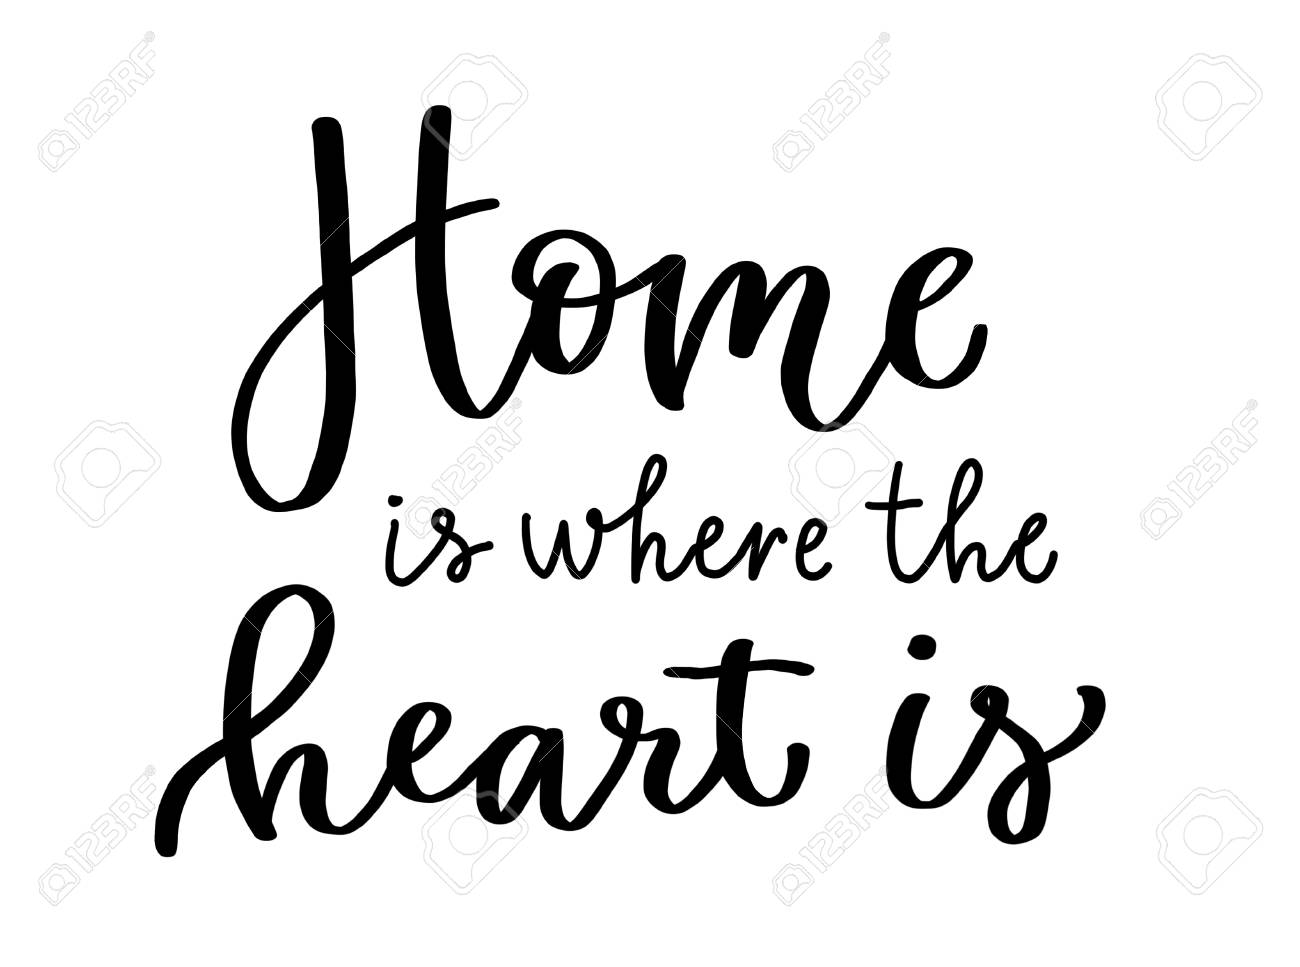 Home is where the heart is!